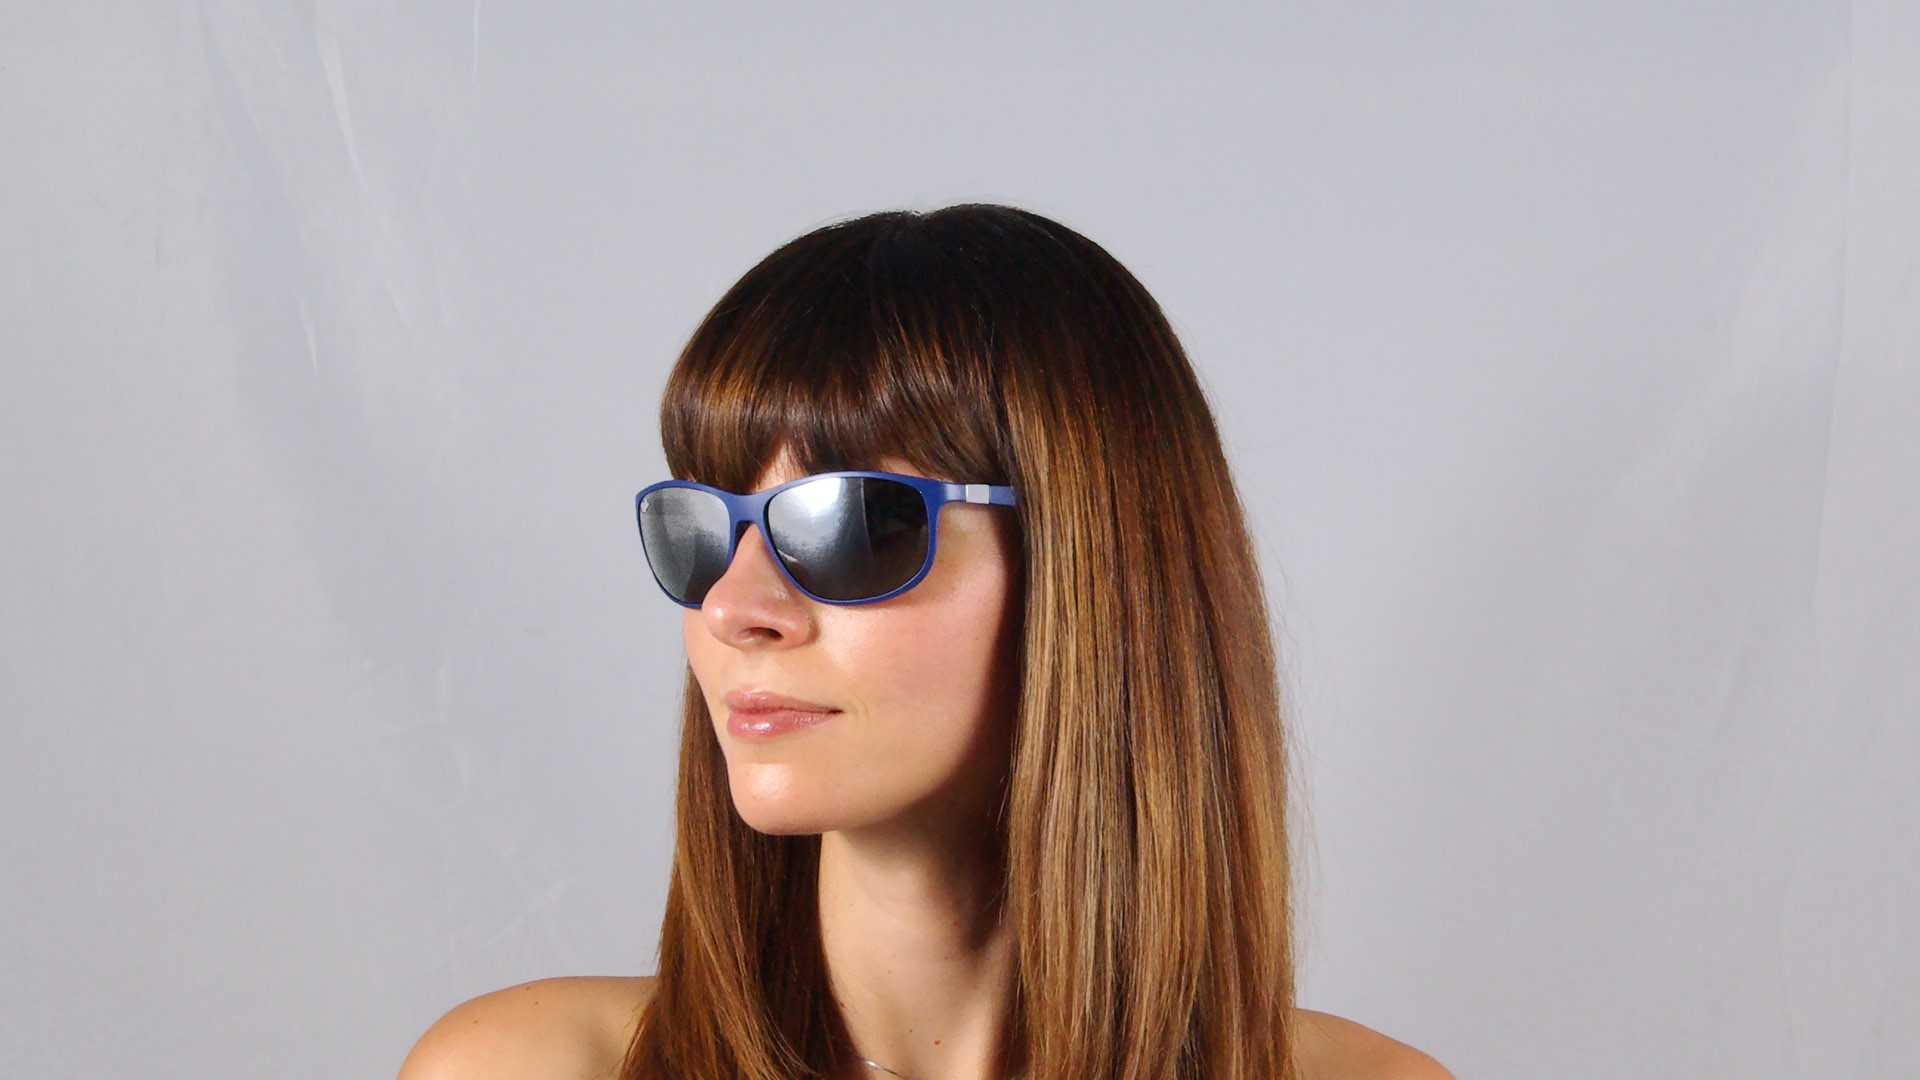 Rb 6161 Ray Ban - Welcome To Miami 1114395244c